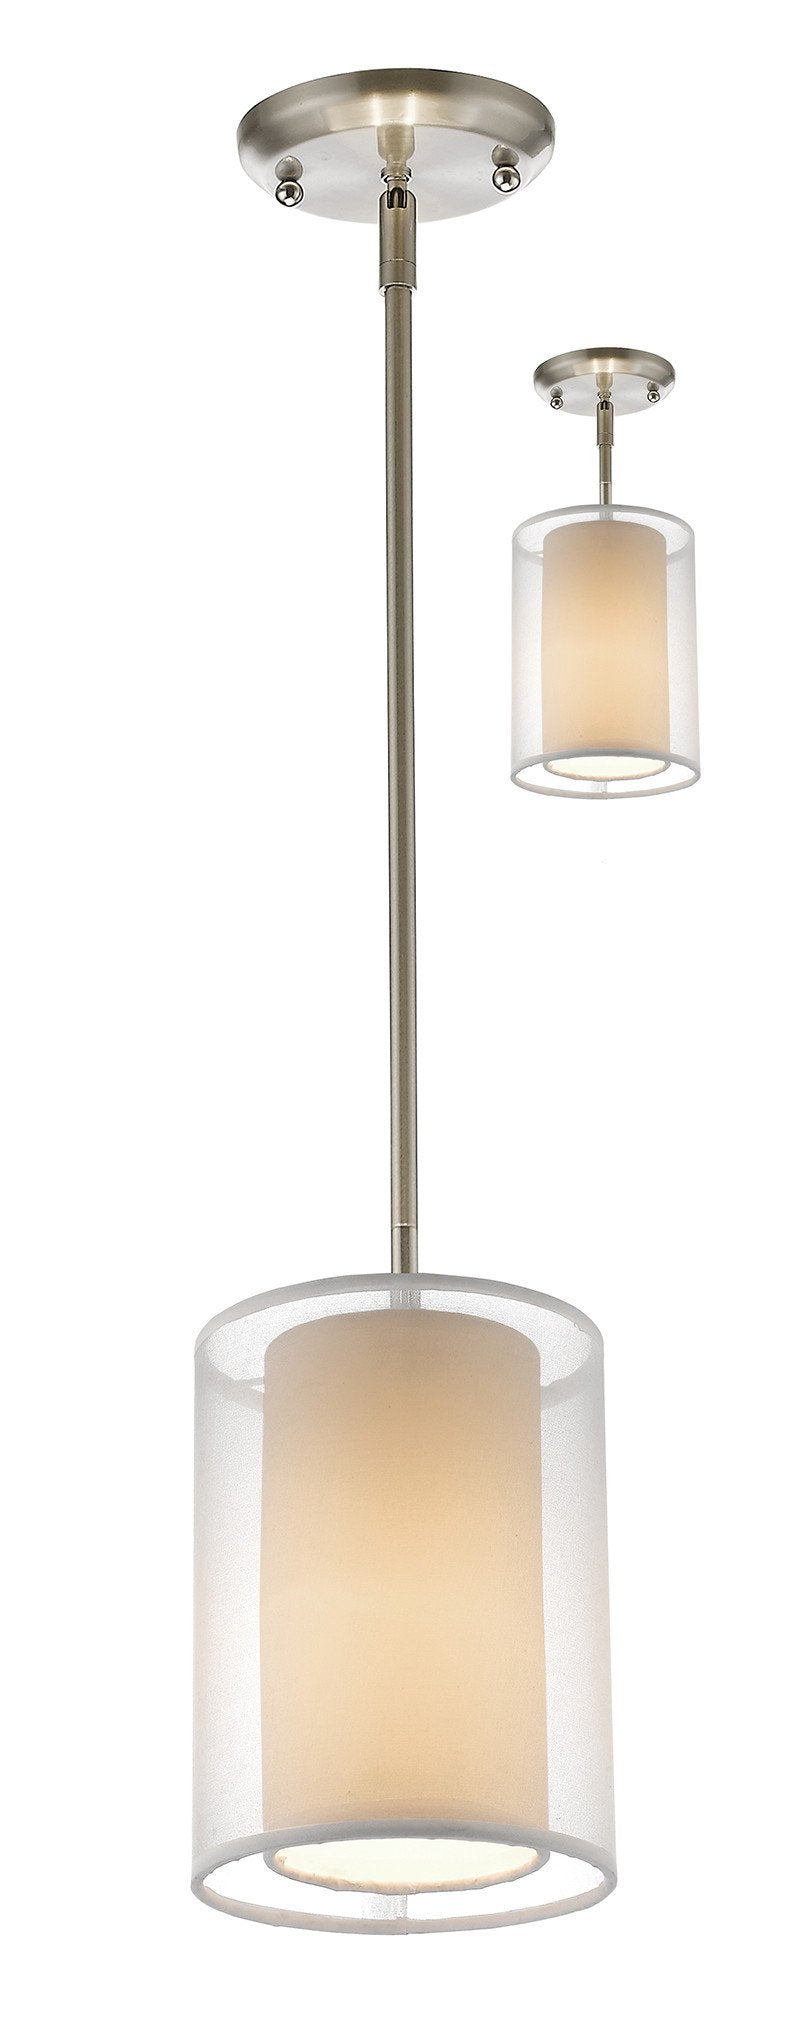 Z-Lite 192-6W-C 1 Light Convertible Mini Pendant from Z-Lite